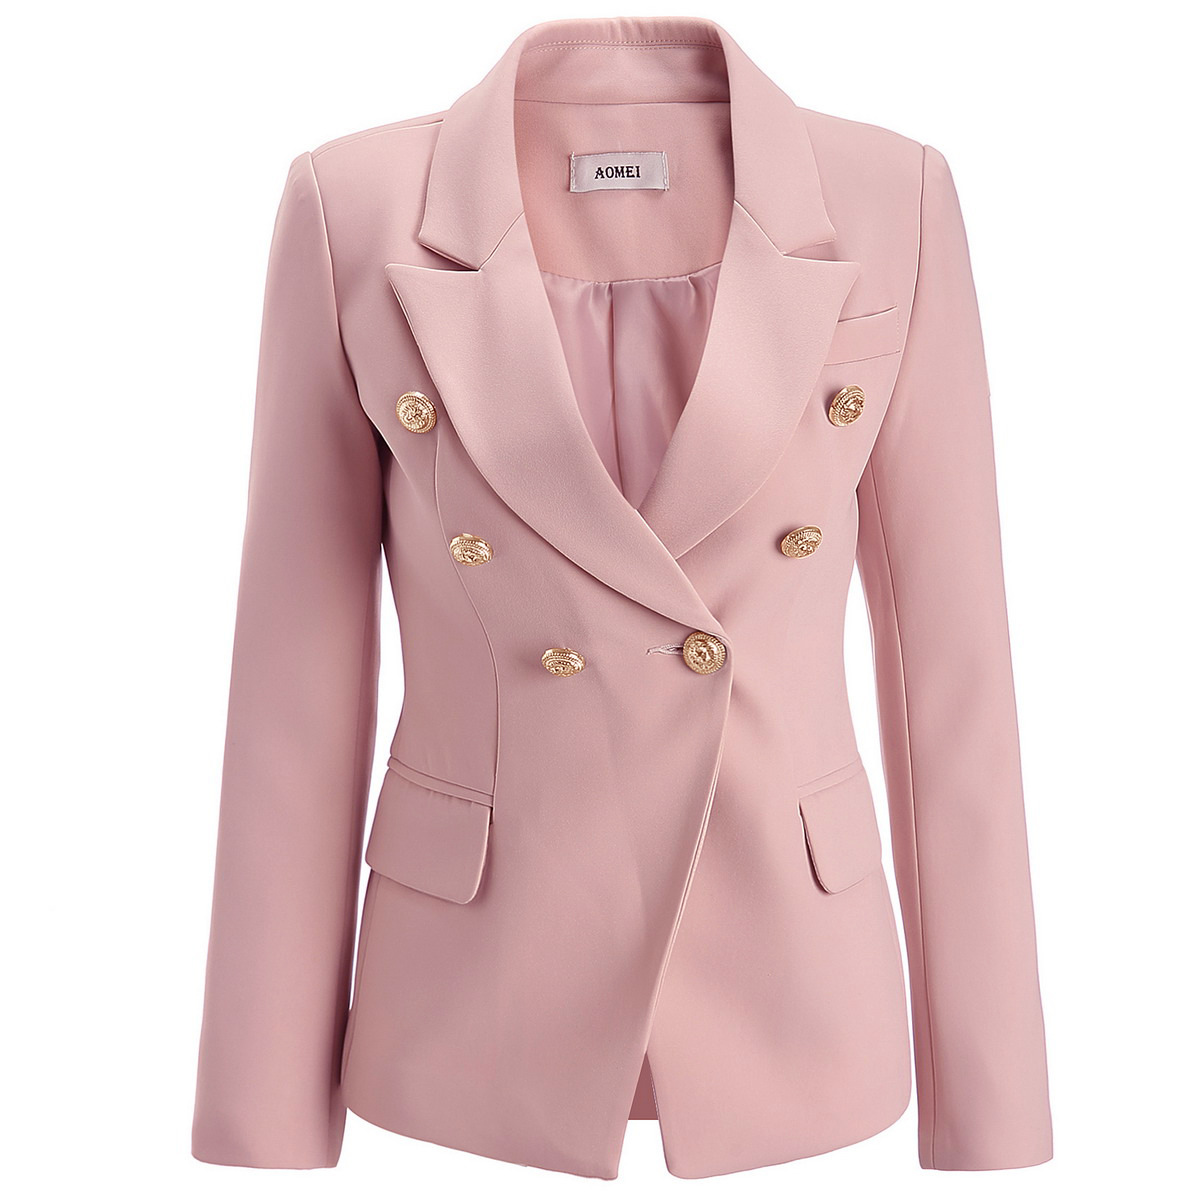 Women's Jacket 2019 Autumn And Winter New Solid Color Self-cultivation Double-breasted Suit Fashion Women's Suit Jacket